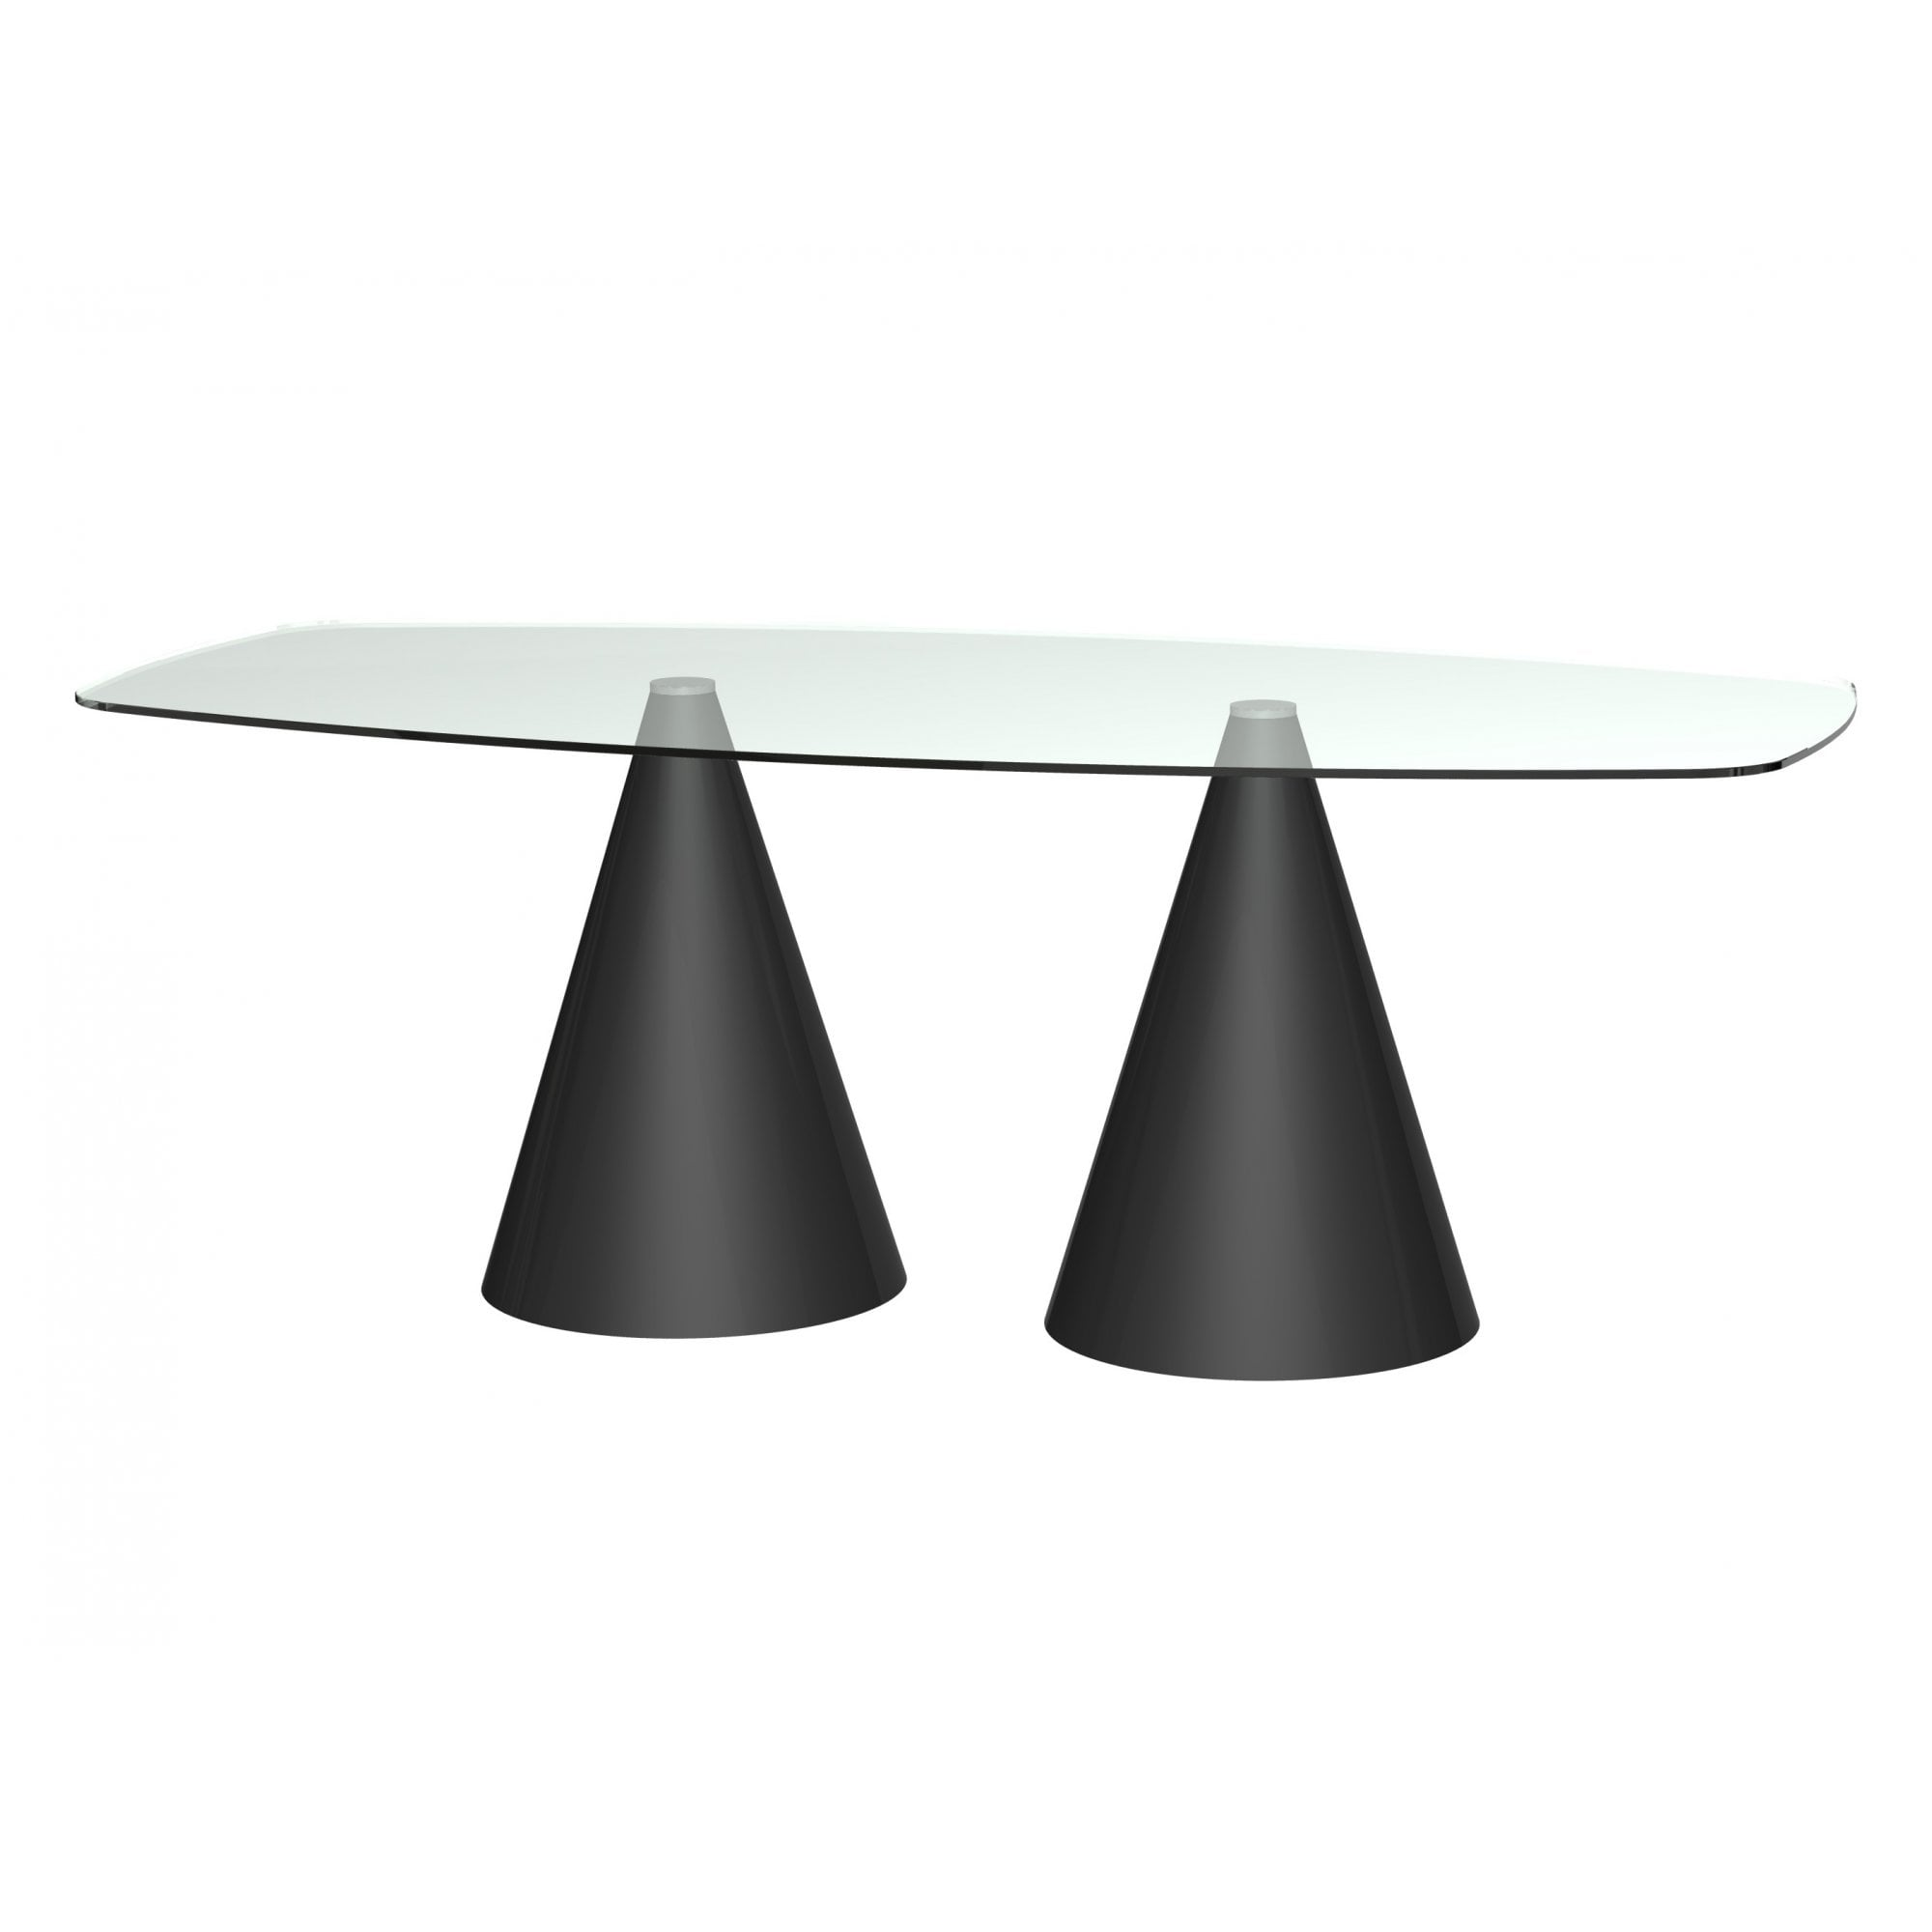 Rectangular Clear Glass Dining Table W Conical Black Base From Fusion